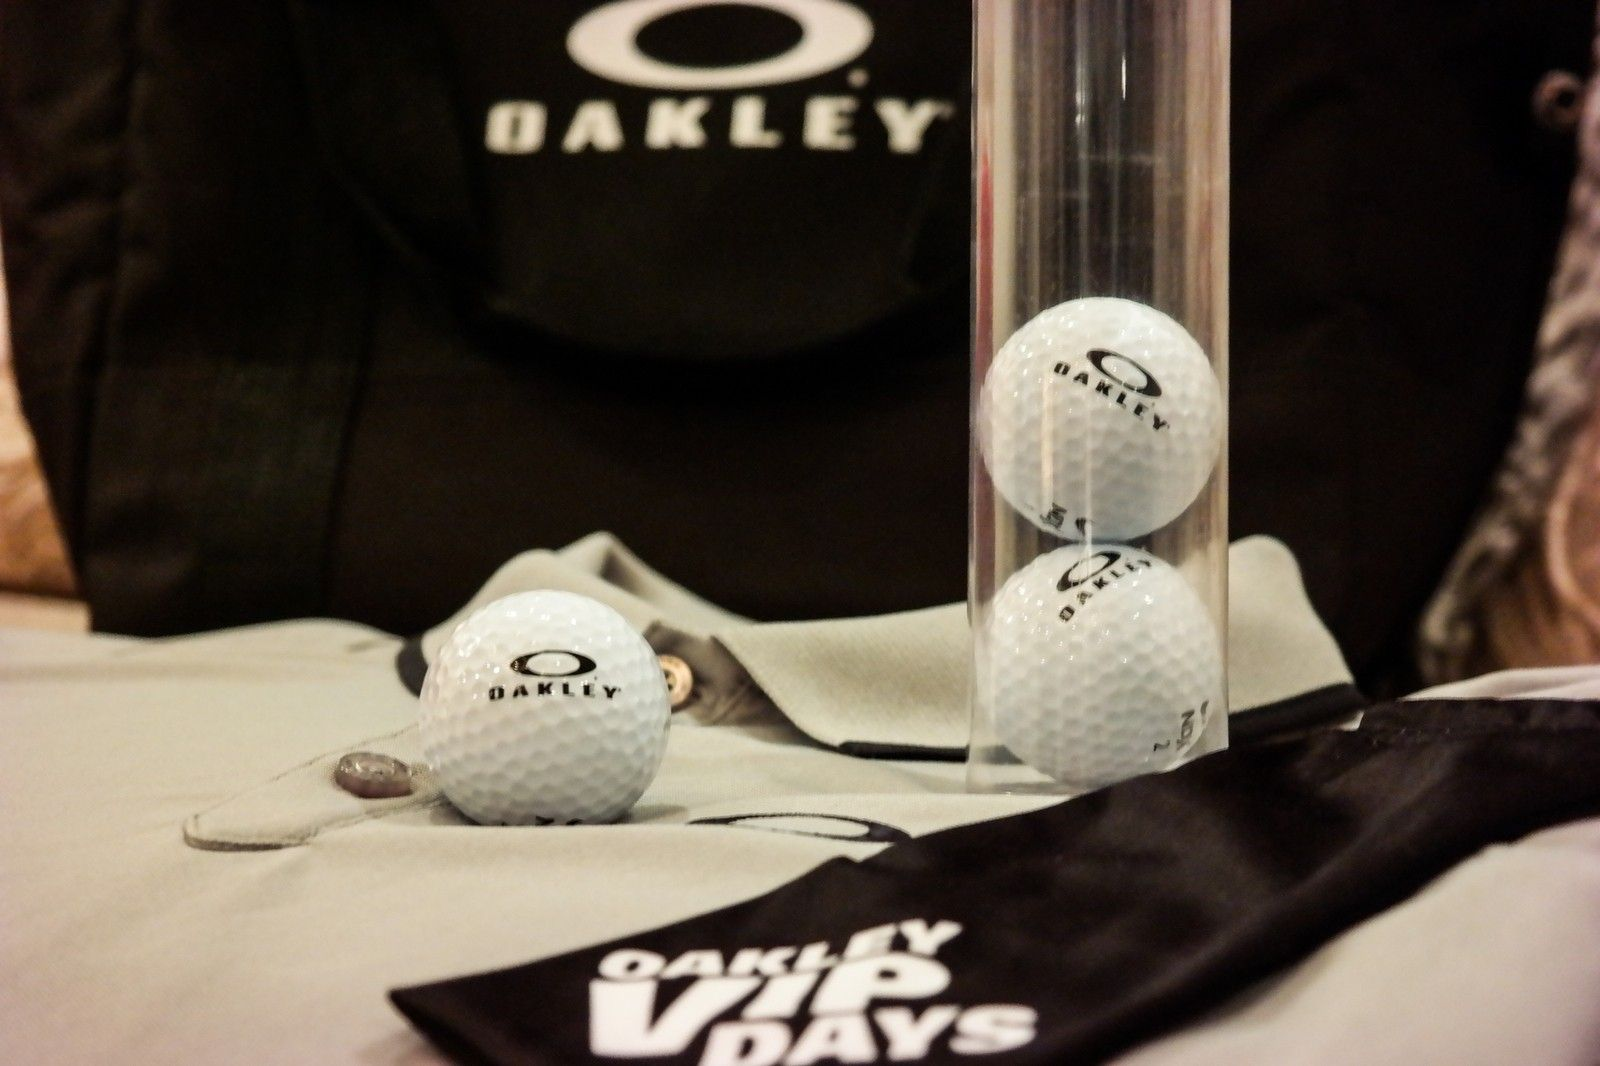 Want something you can't go out and buy?  OAKLEY V.I.P. polo, mf bag, golf balls and more. - SAM_1687.jpg